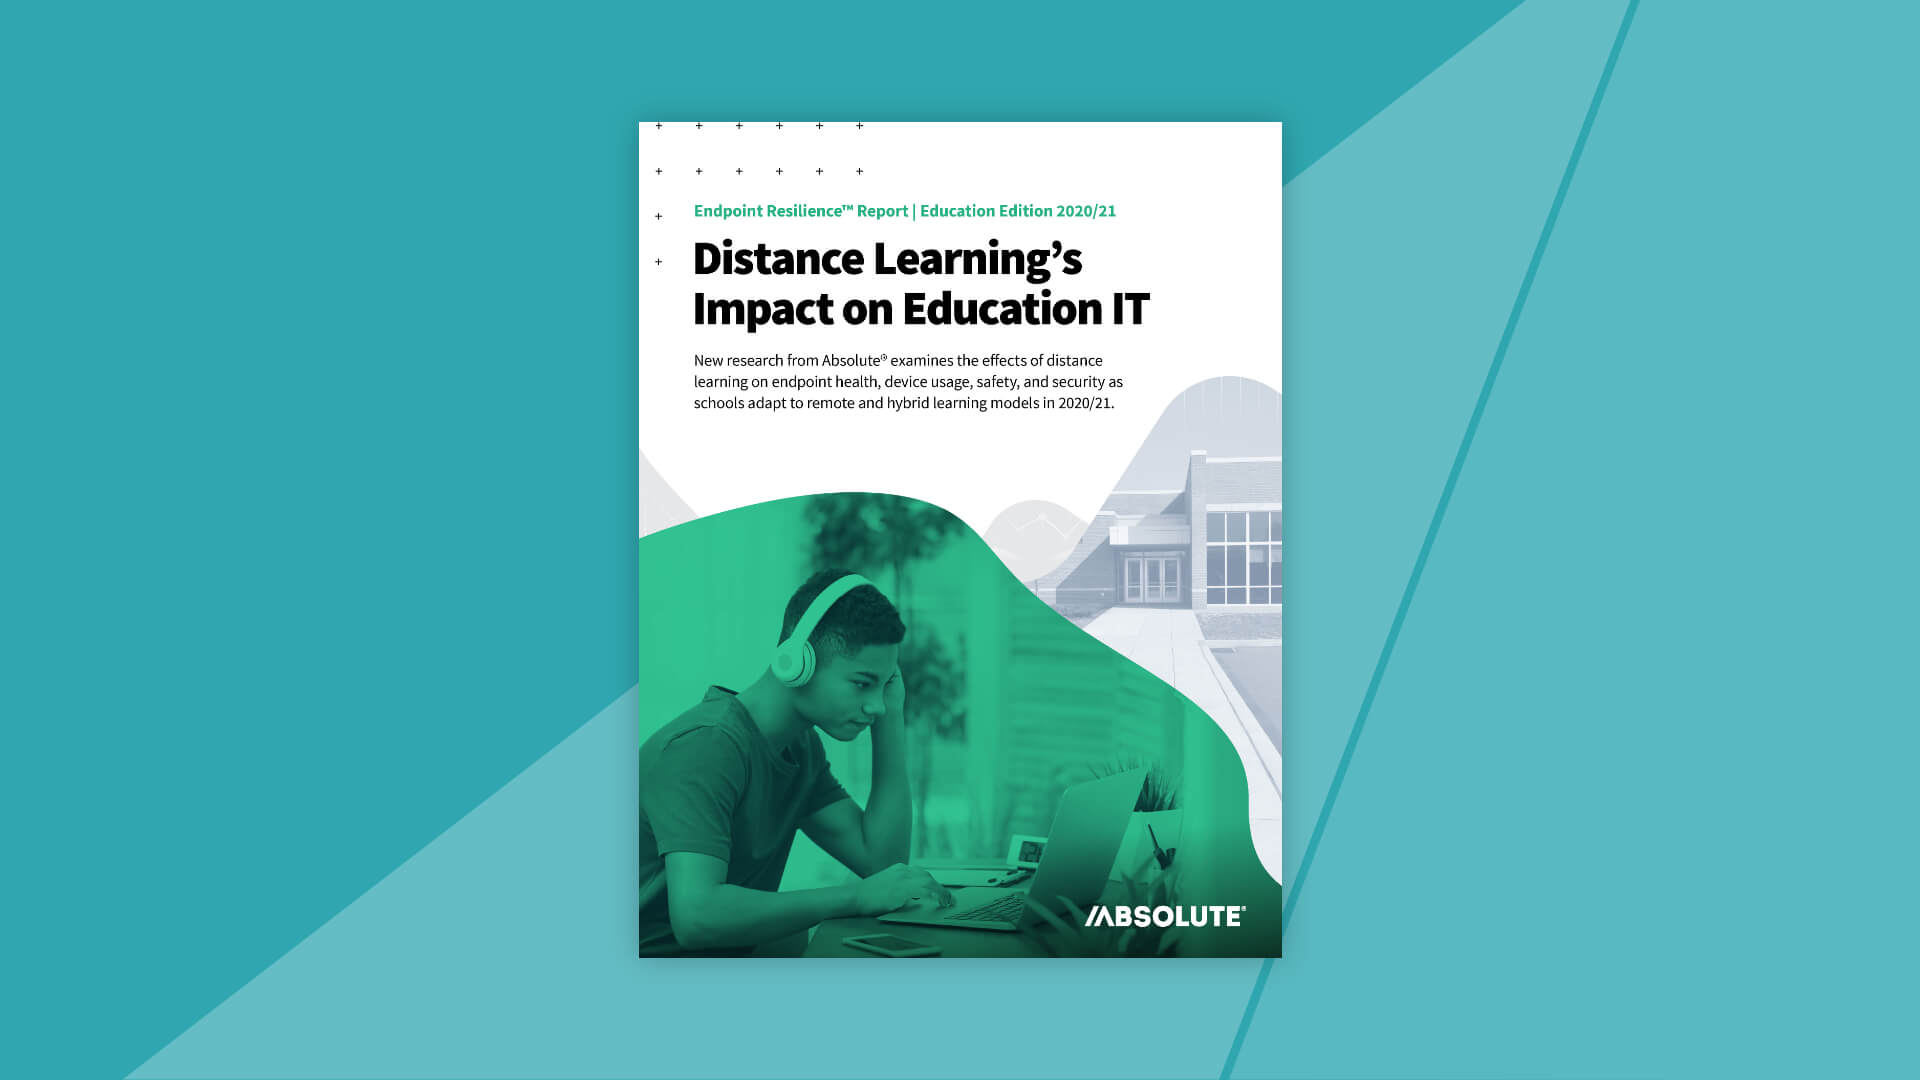 Distance Learning's Impact on Education IT